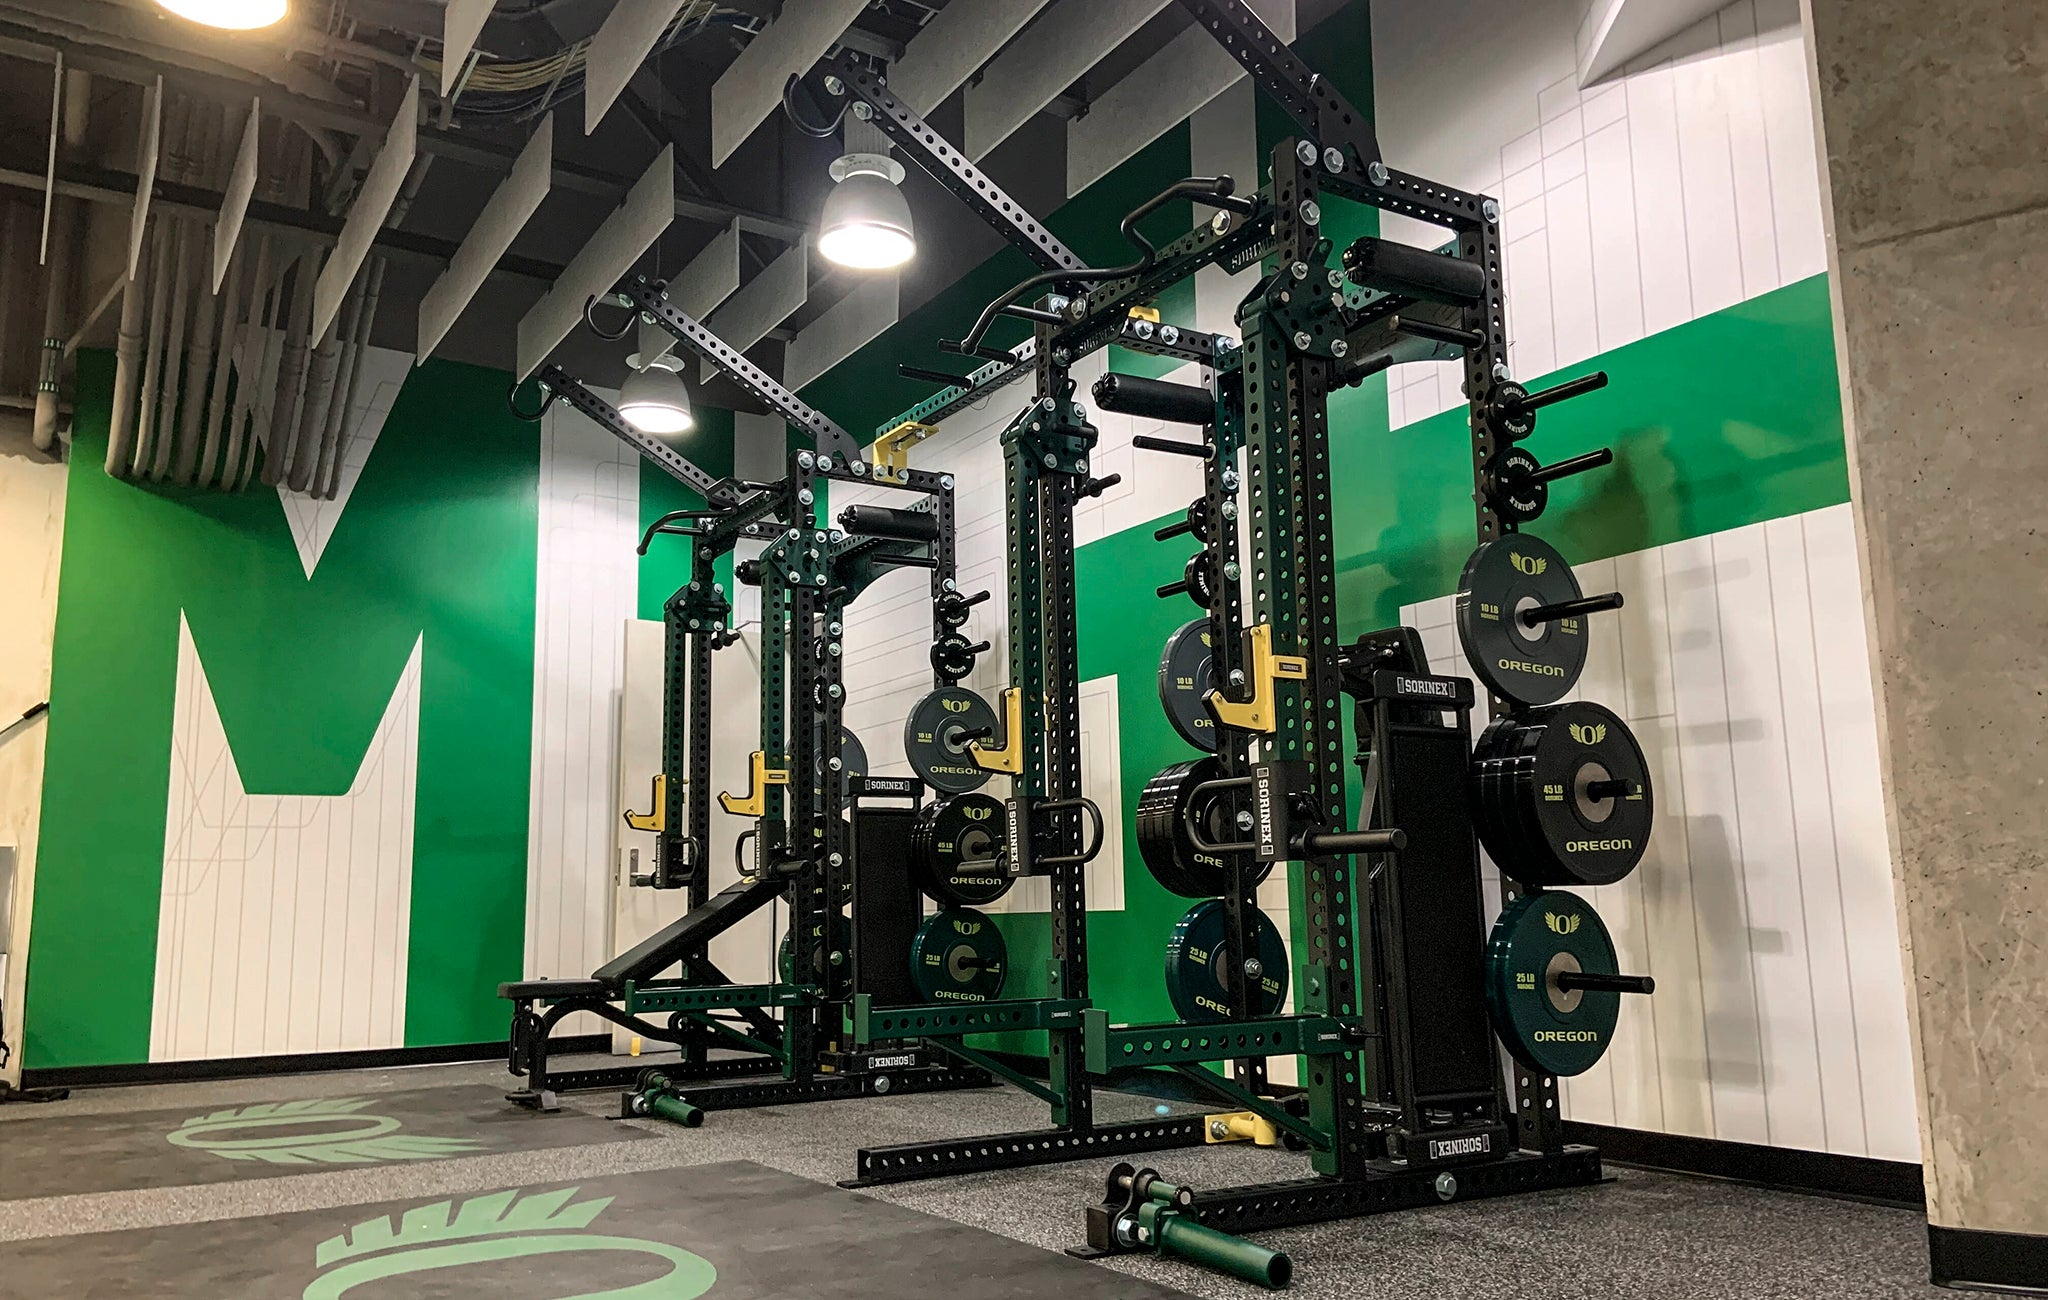 Oregon power racks